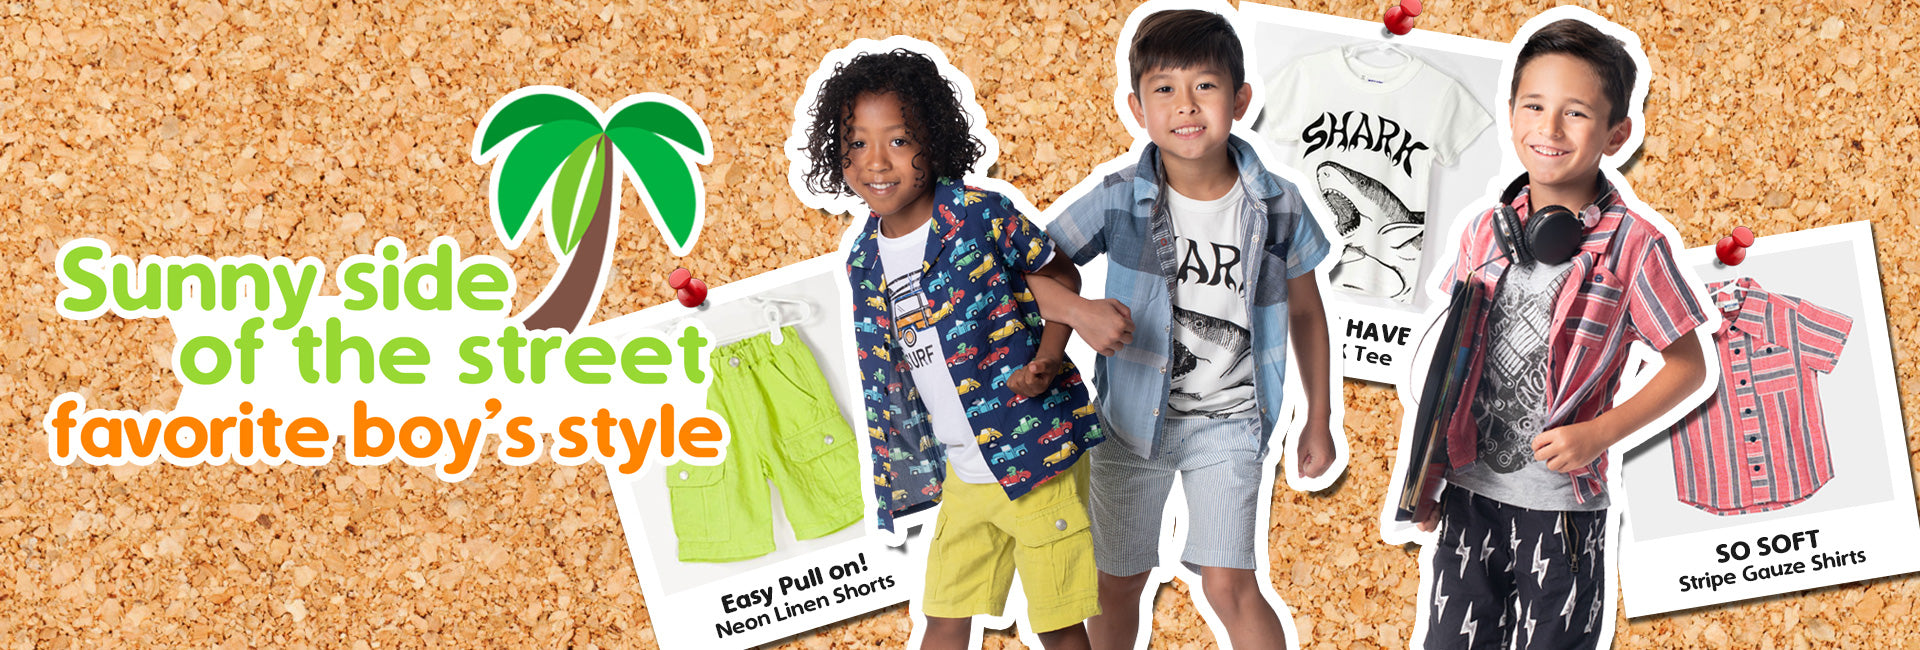 d9920d3af NYC's favorite Cute Kids Clothing for Boys and Girls – Bit'z Kids